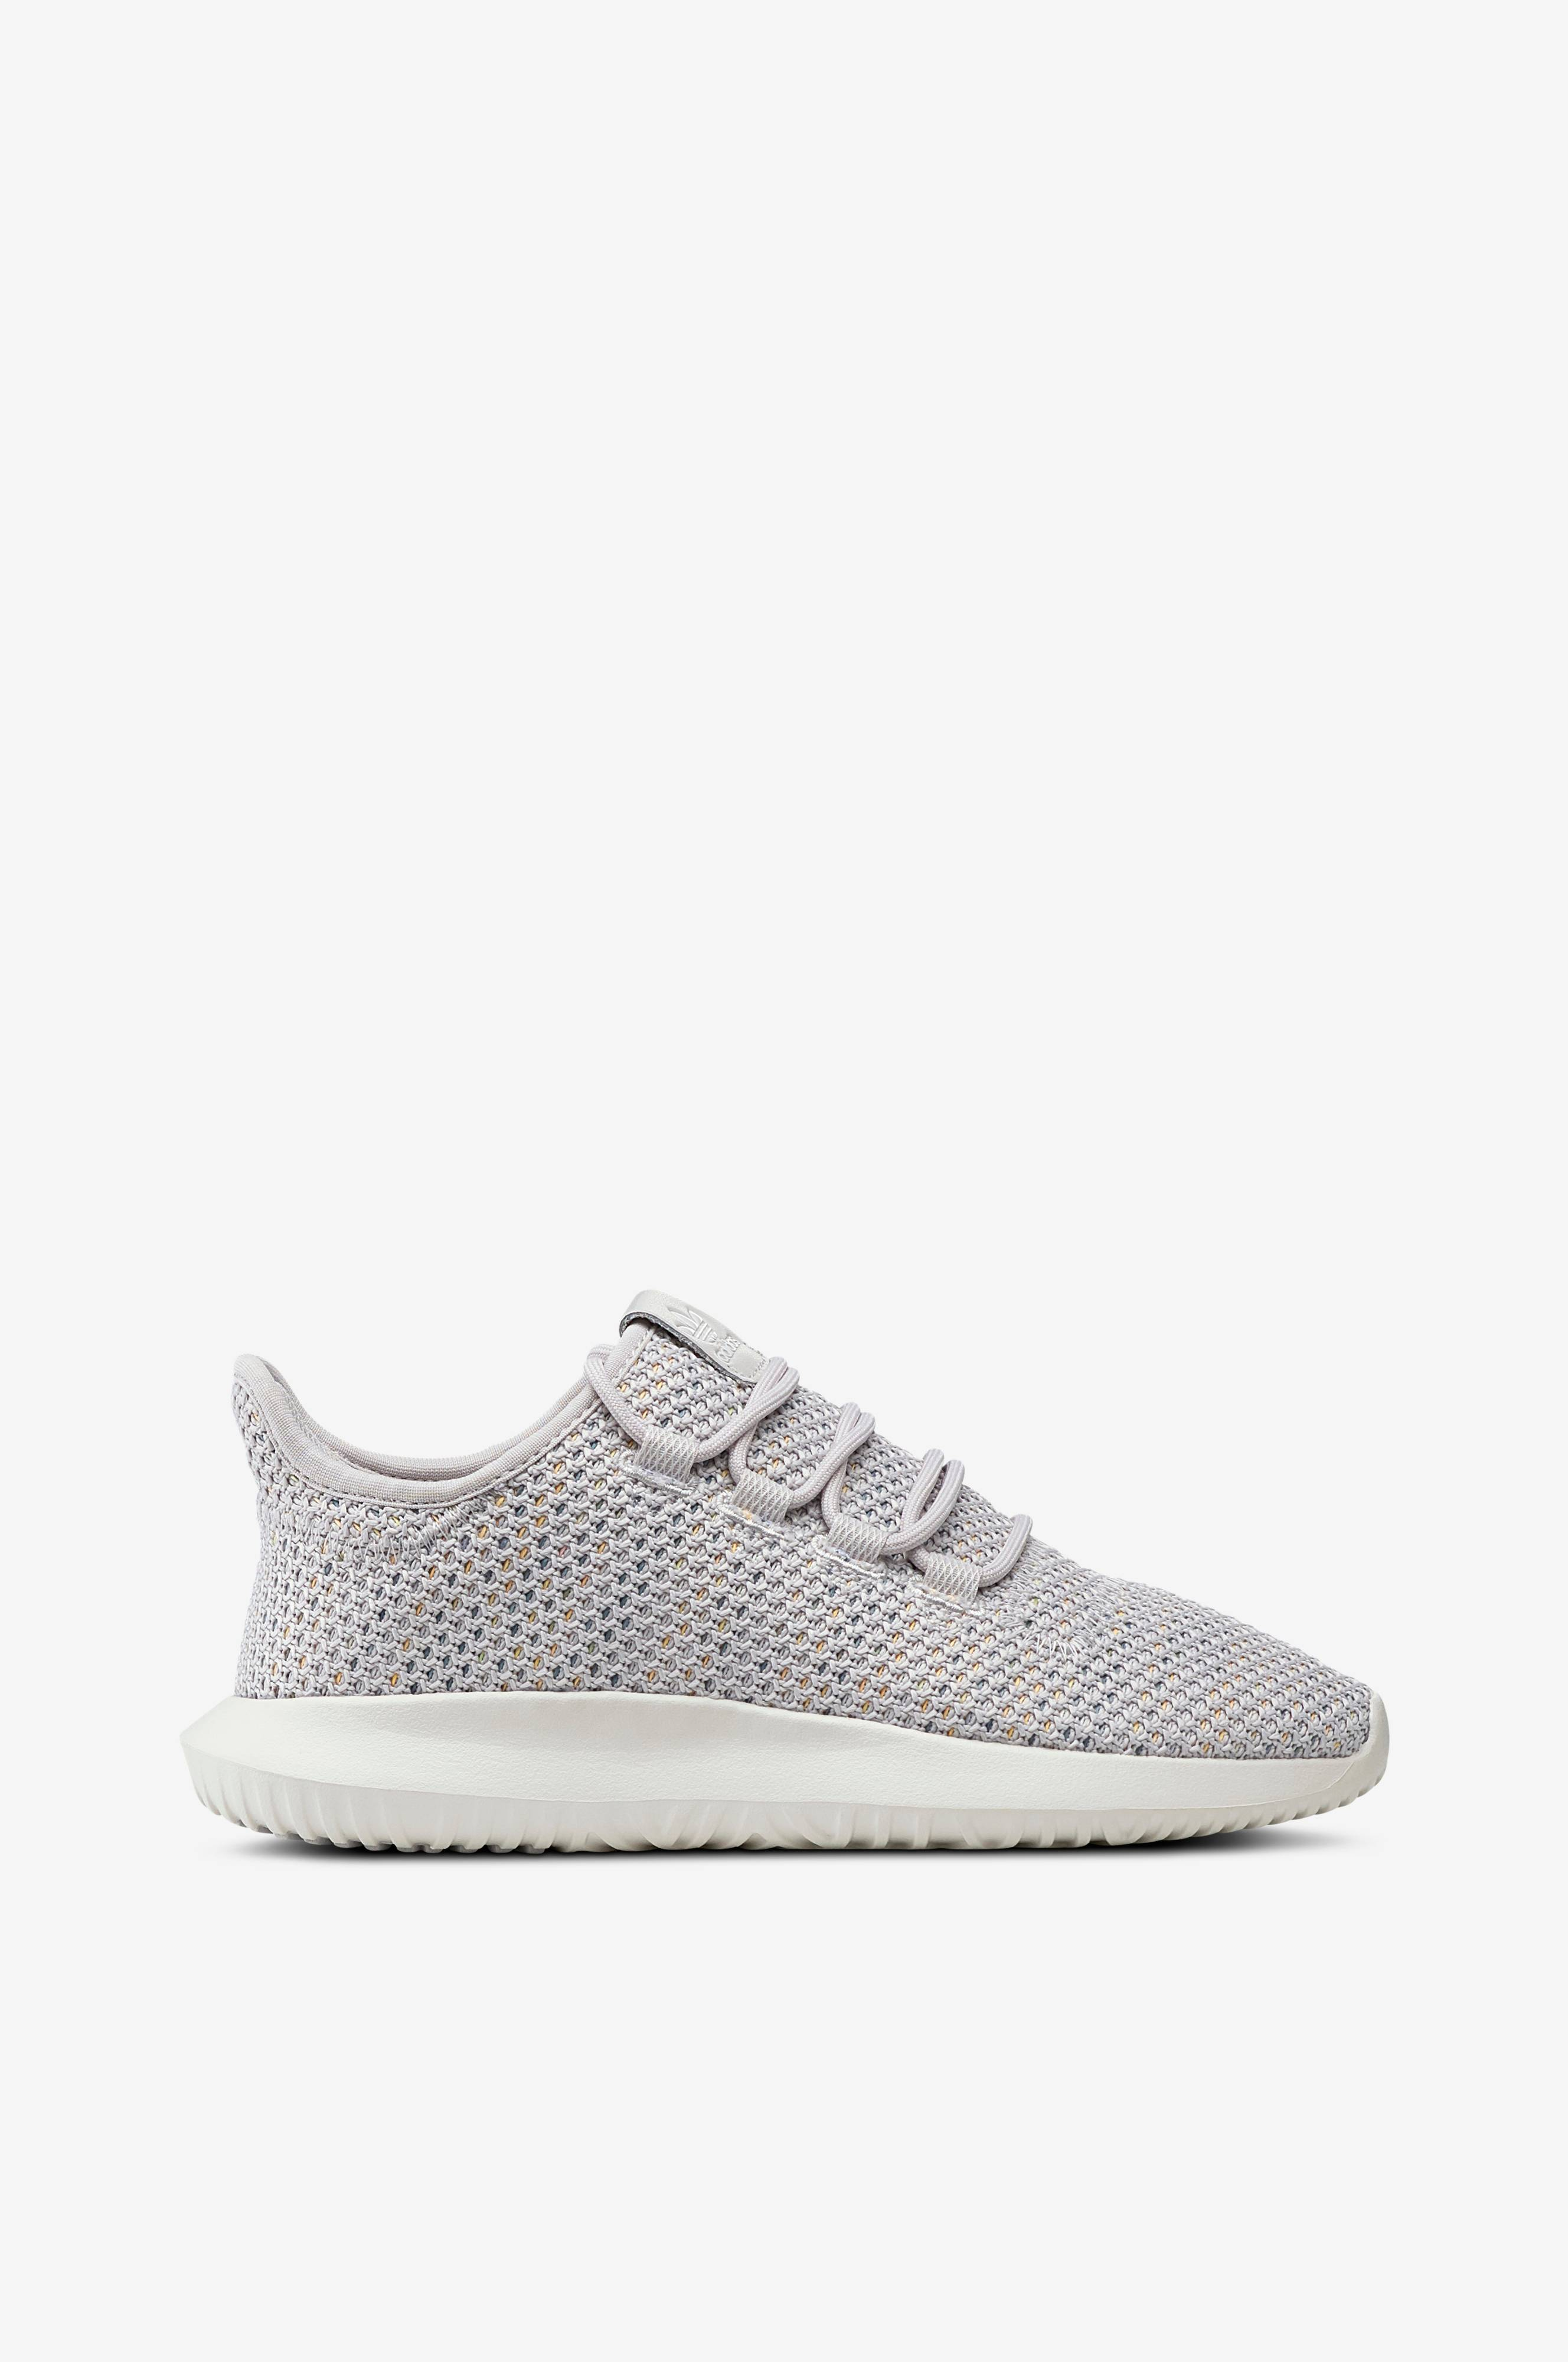 best authentic de3f0 443b0 adidas Originals Tubular Shadow CK -tennarit - Harmaa - Naiset - Ellos.fi